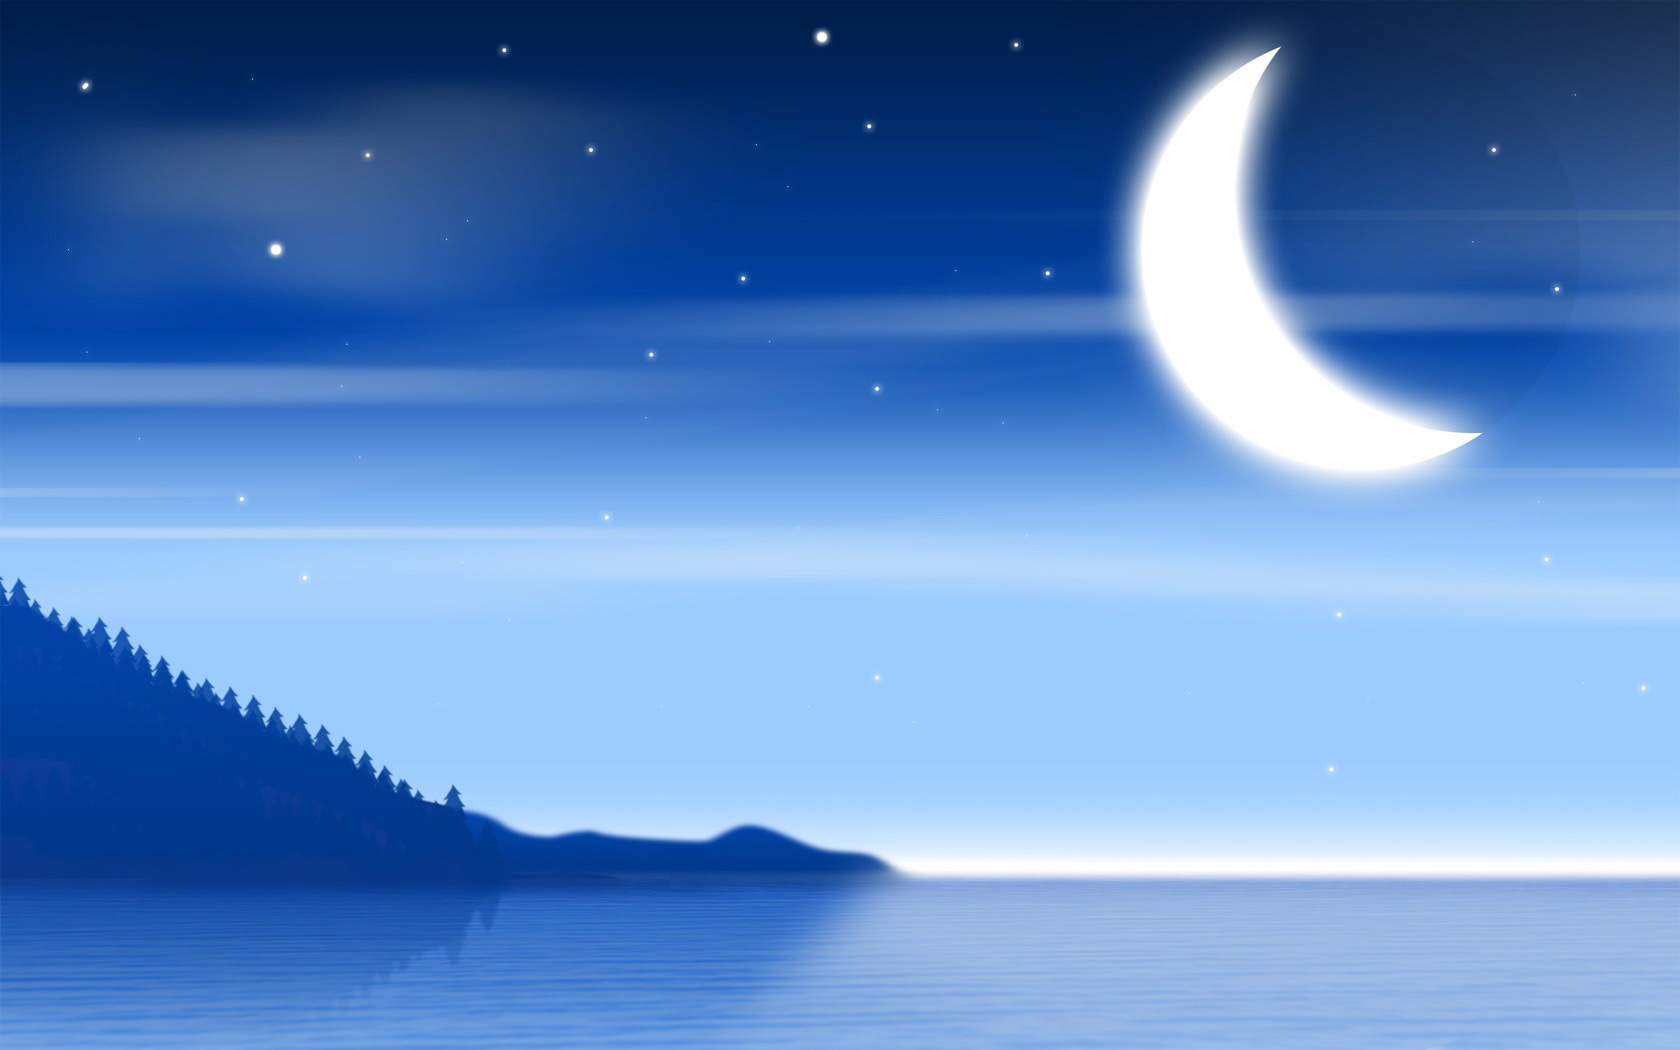 Background clipart night. Wallpaper